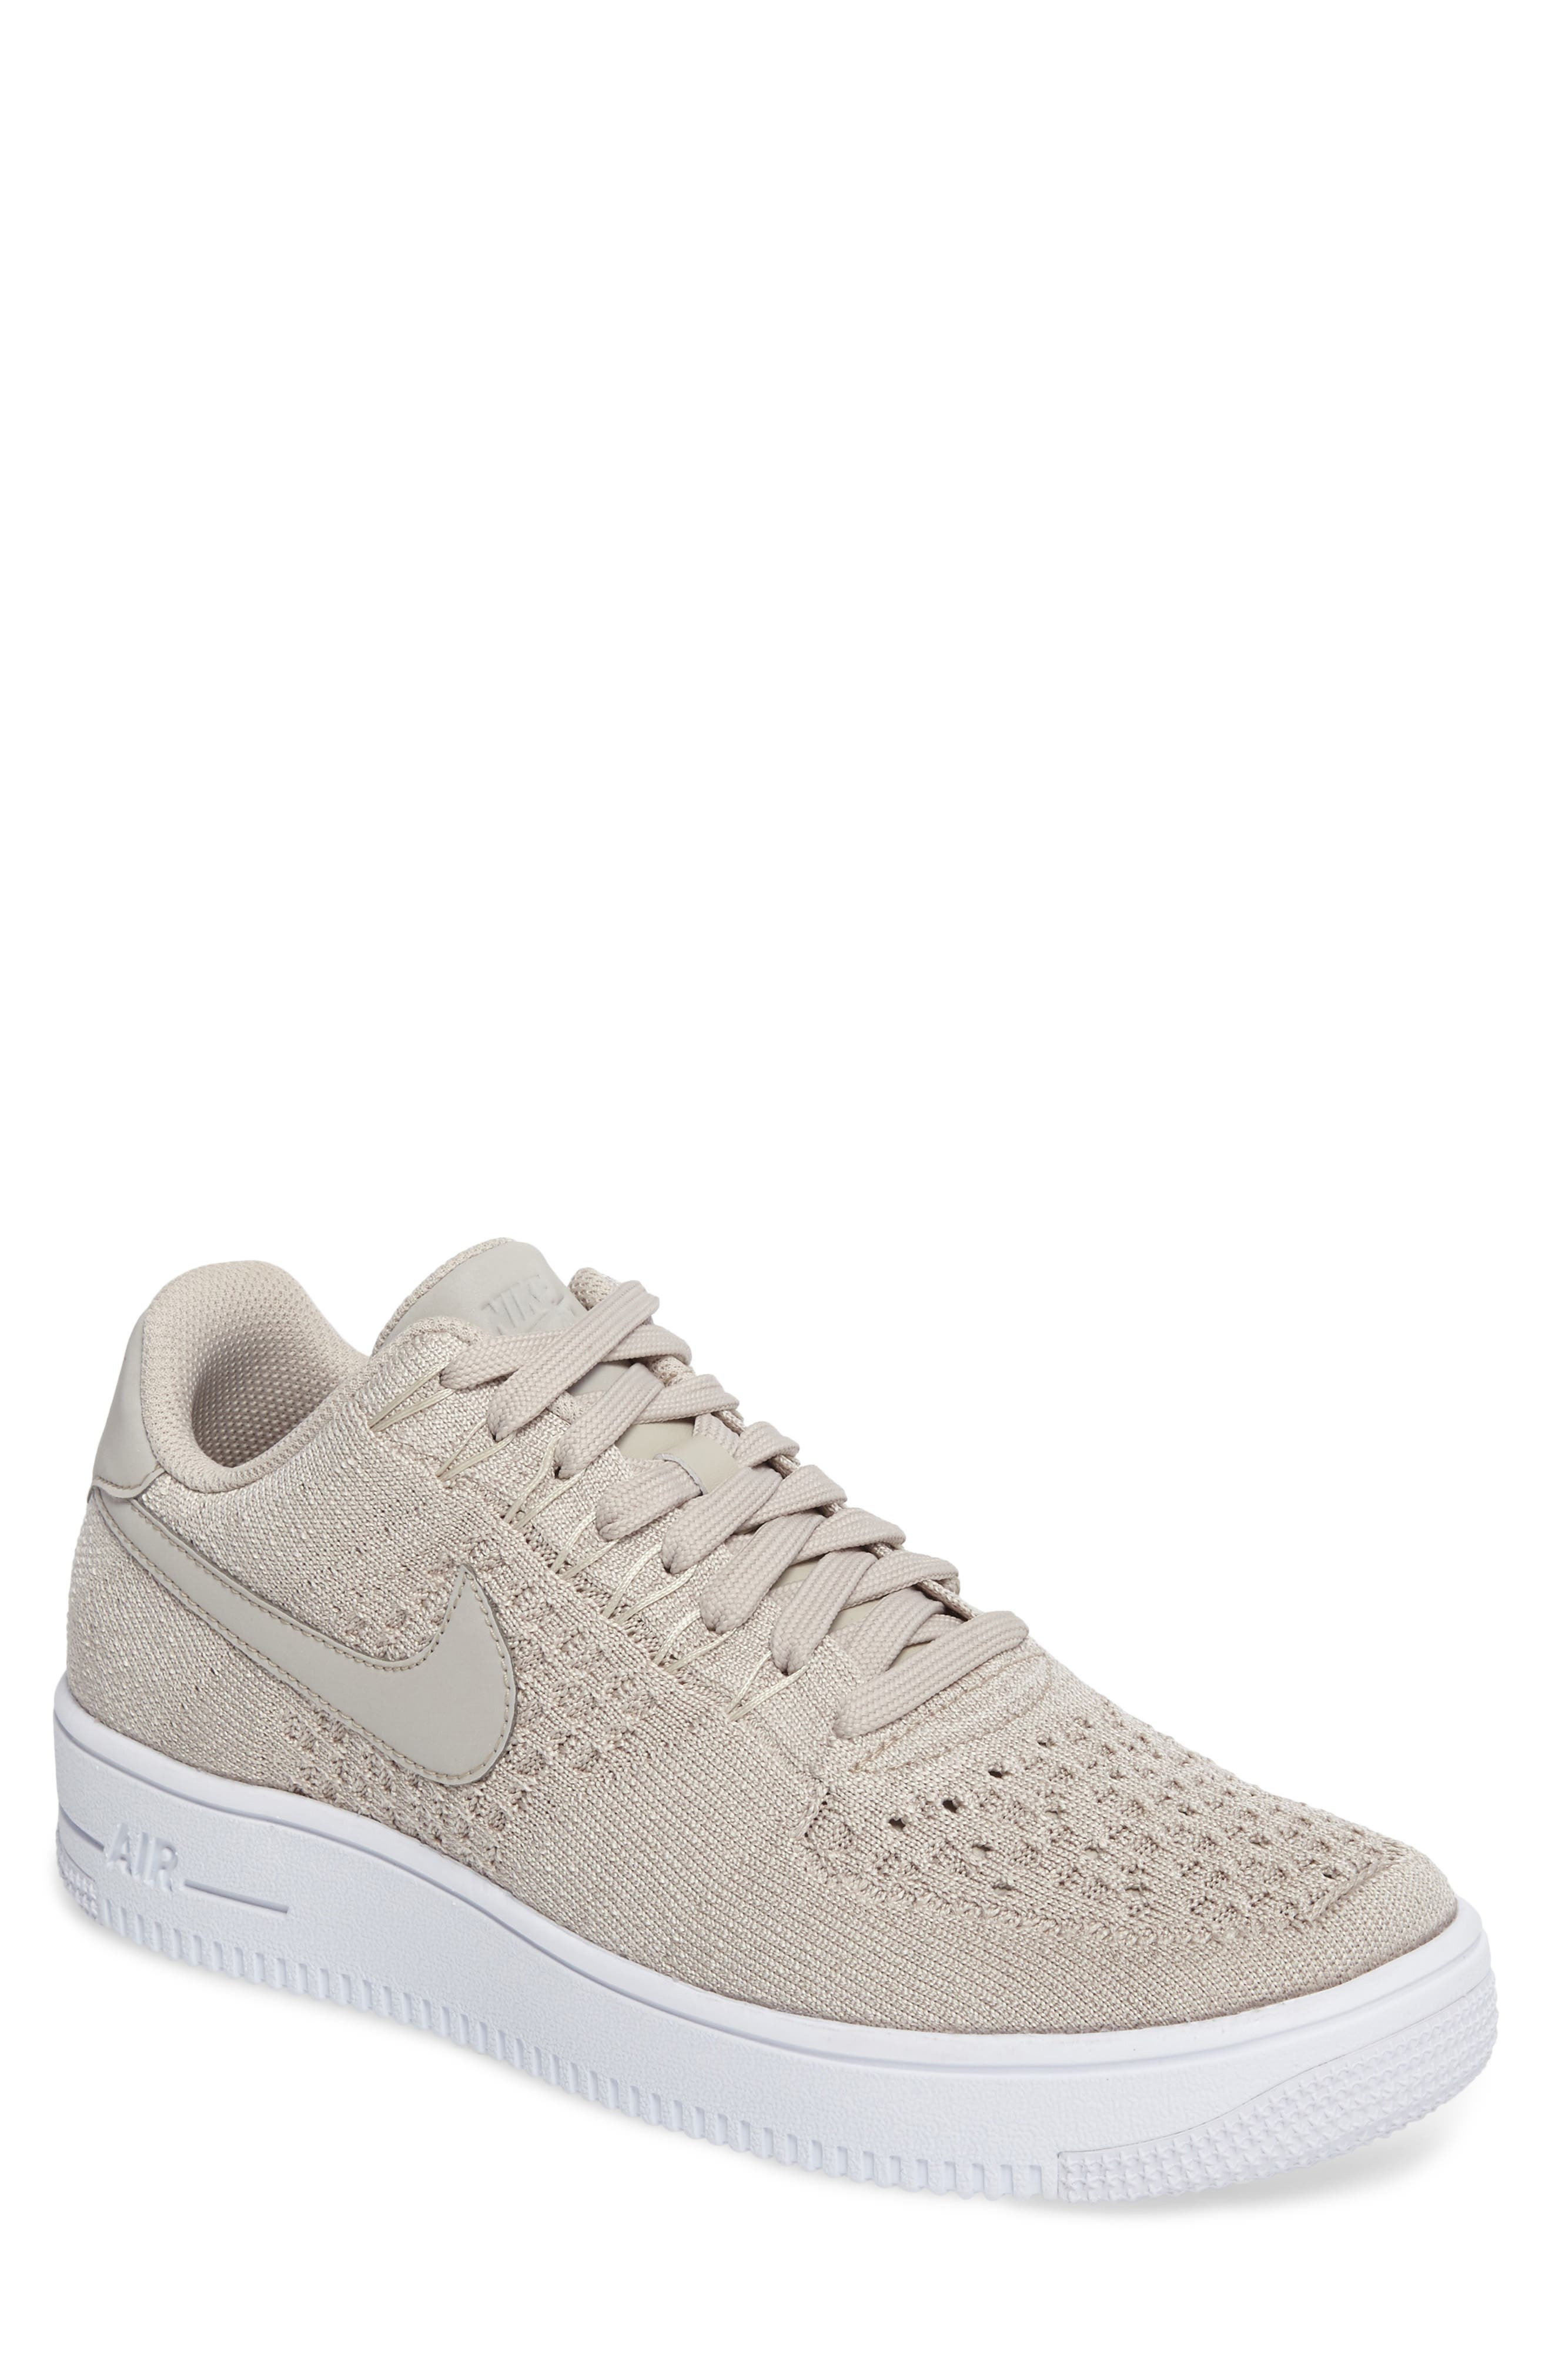 Air Force 1 Ultra Flyknit Low Sneaker,                         Main,                         color, String/ String/ White